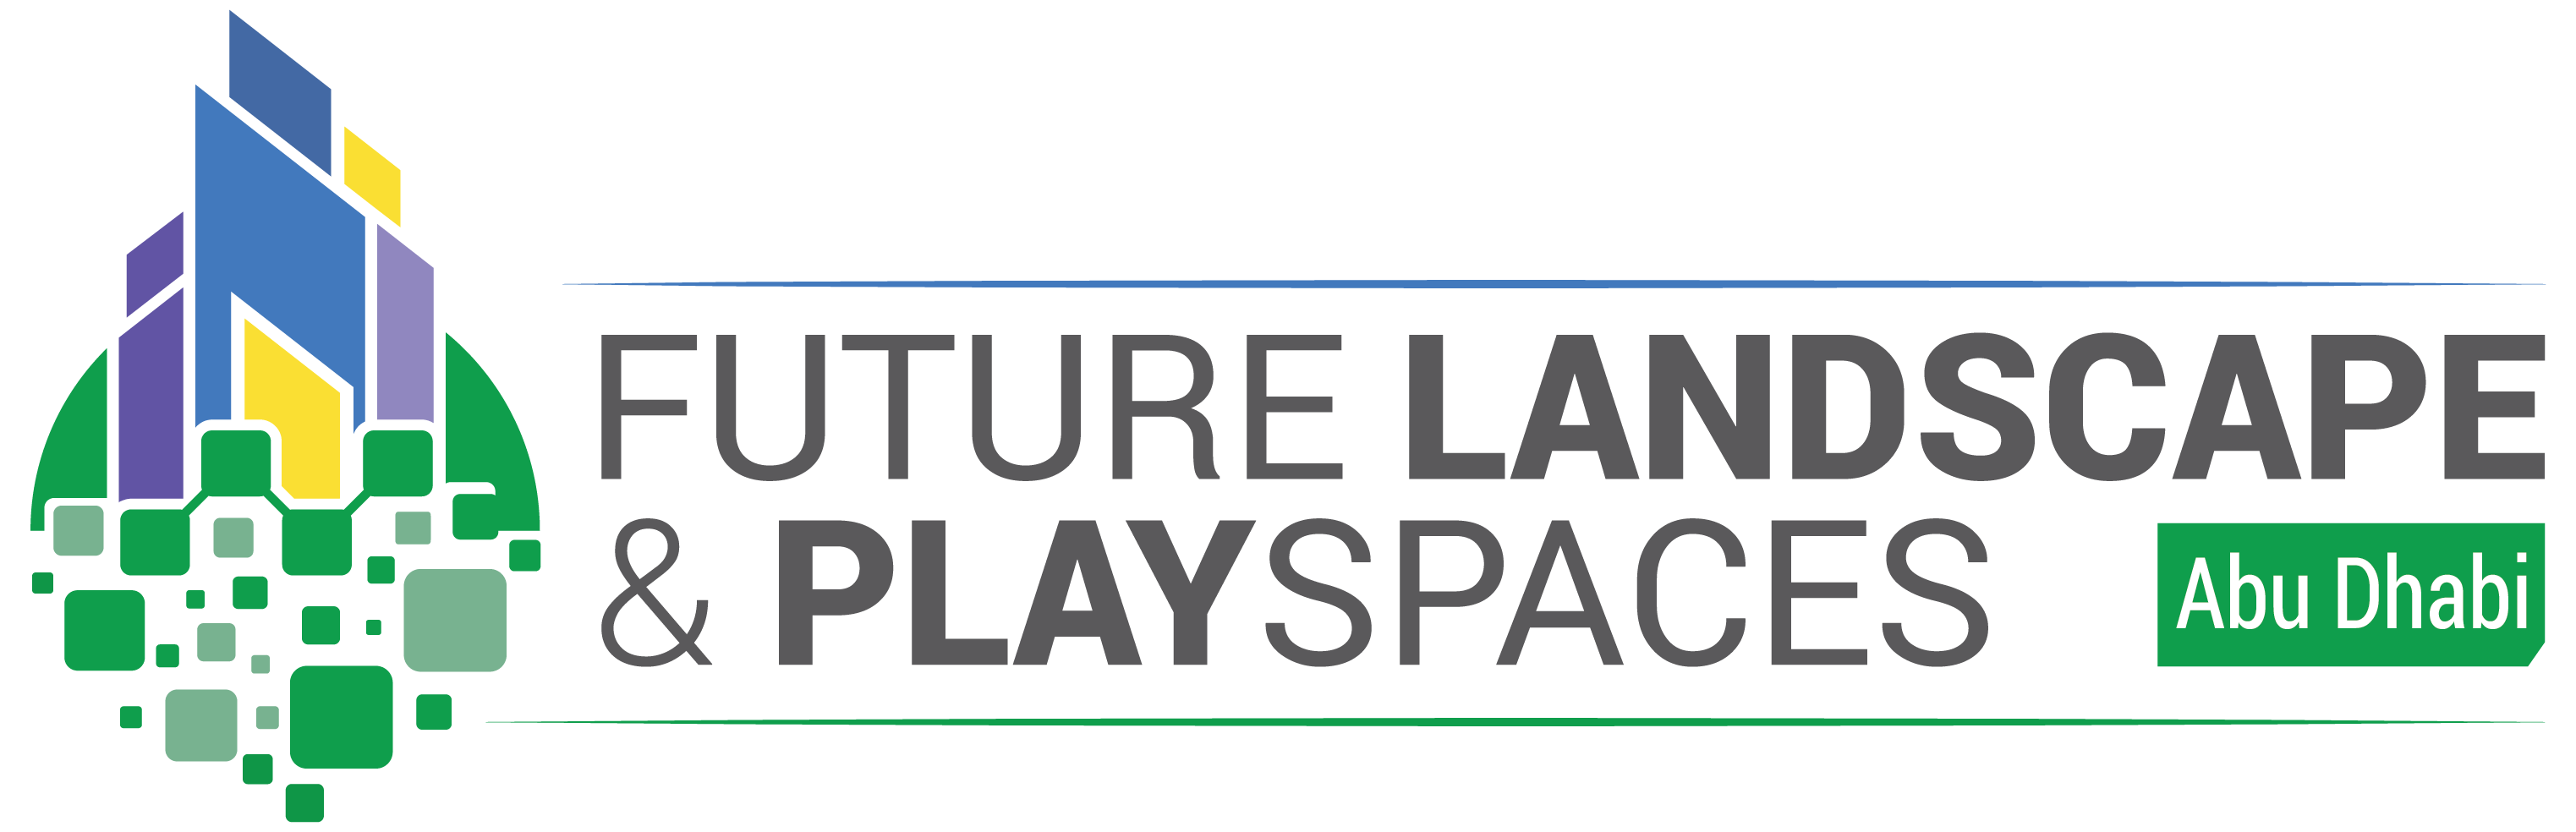 future landscape play